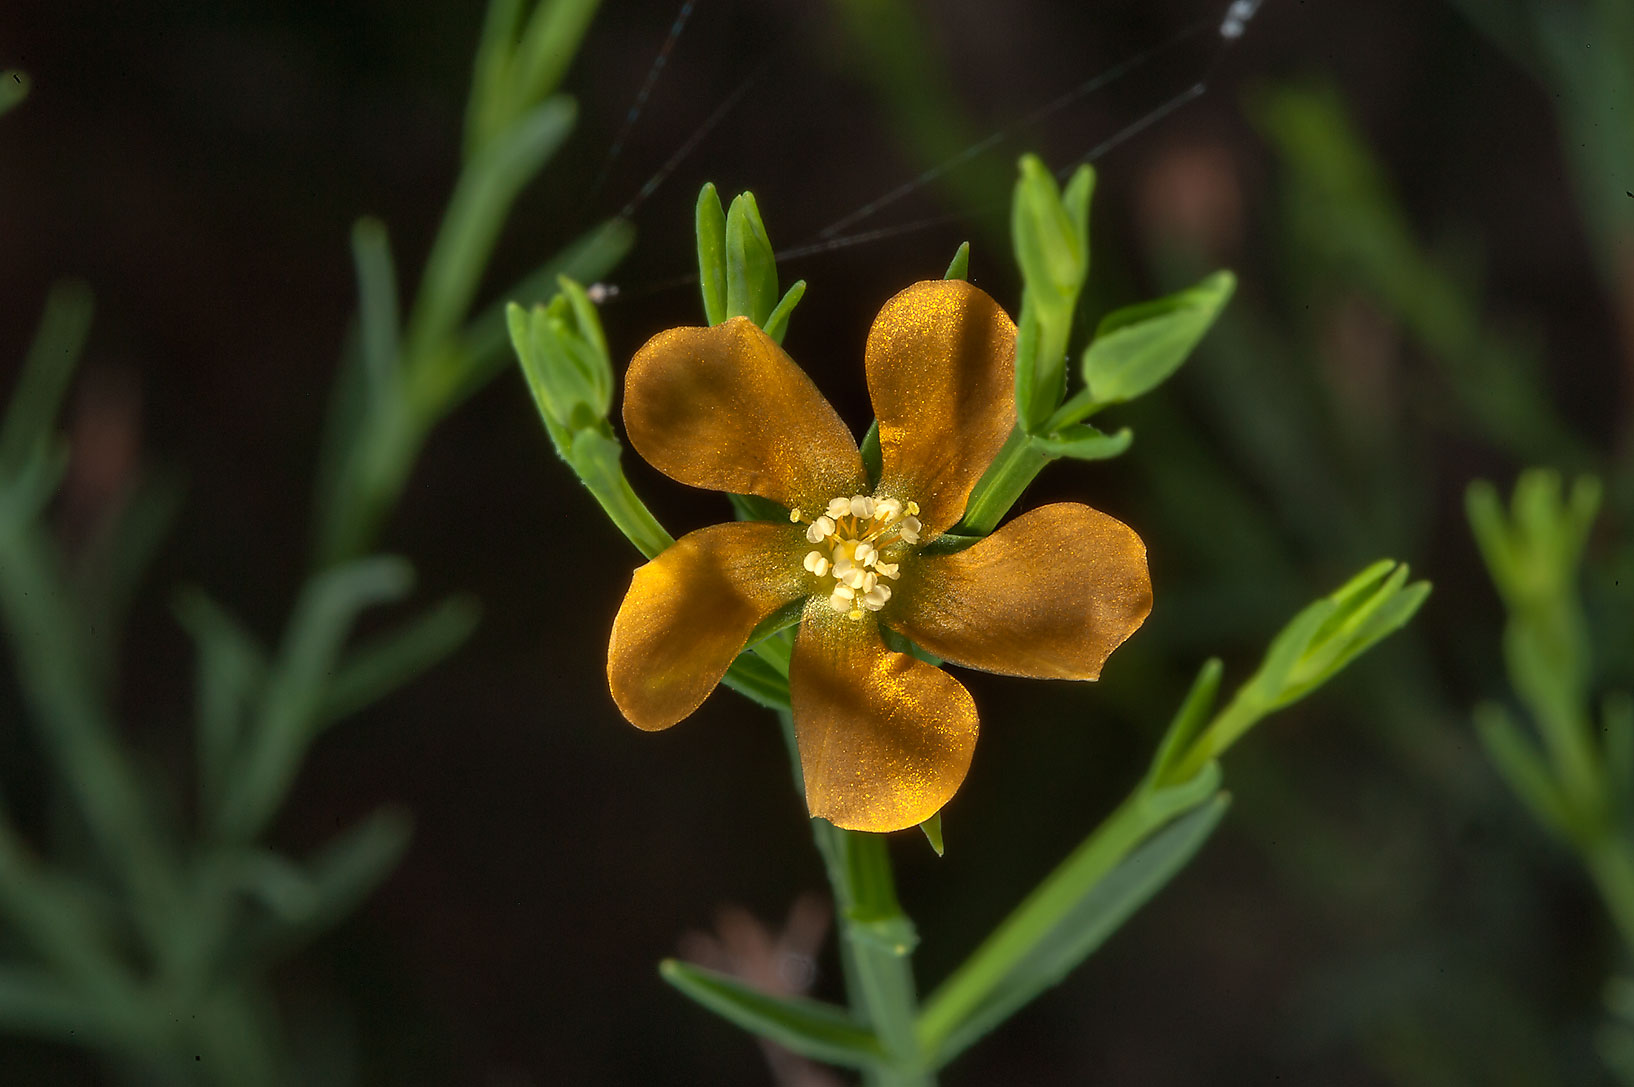 Nits-and-lice (Hypericum drummondii) in Lick Creek Park. College Station, Texas